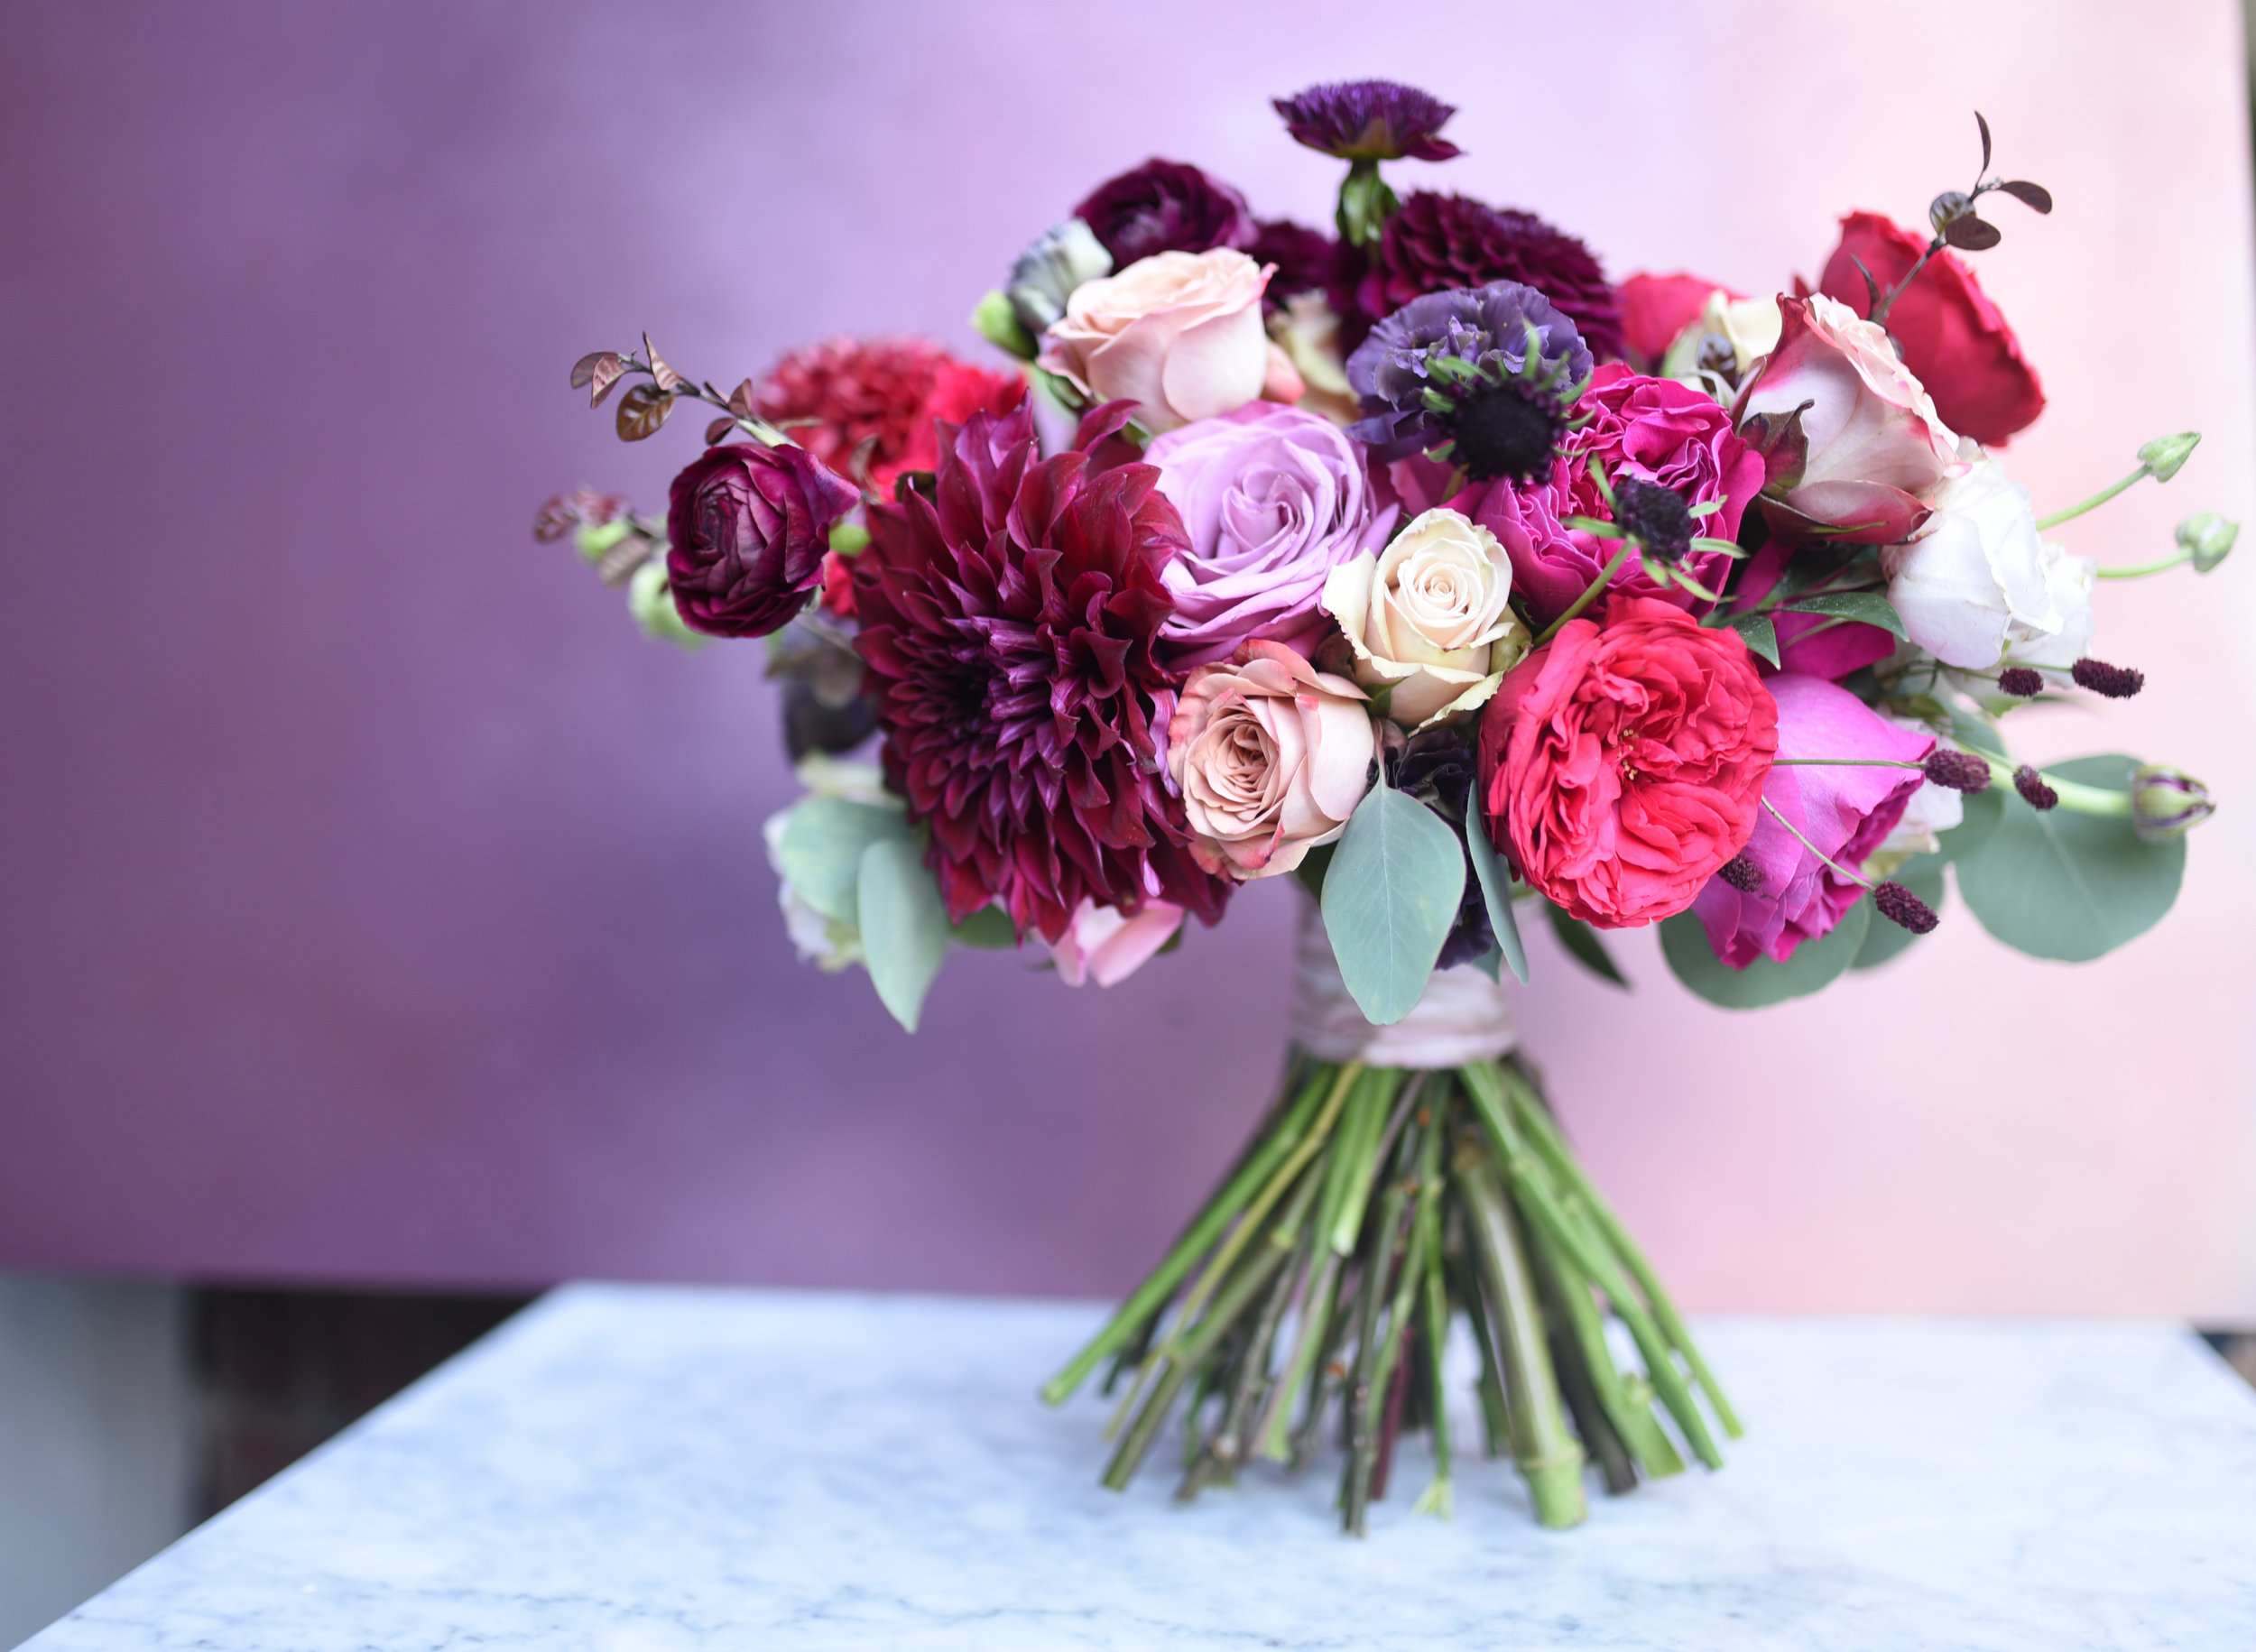 The varied heights allow us to show-off the best flowers in the bunch, especially the dahlias and garden roses